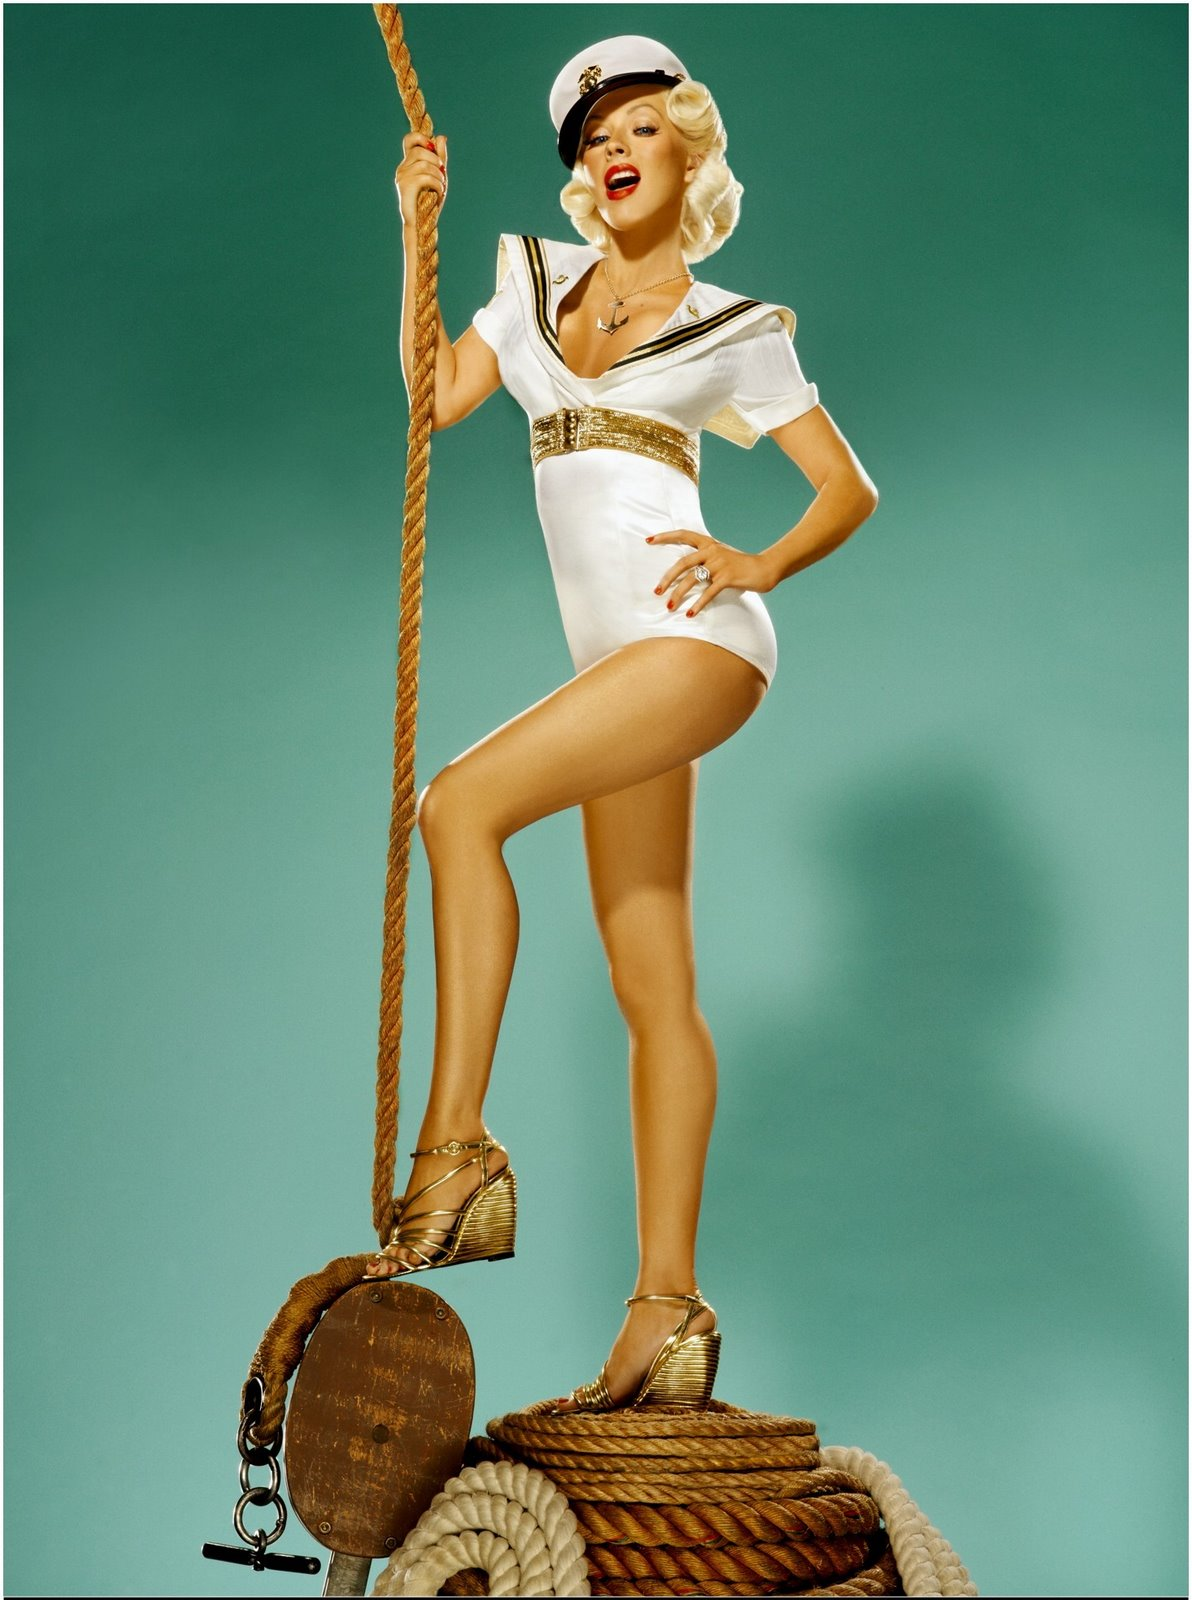 Christina Aguilera Rolling stone photoshoot 01 Celebrate the 4th of July Pin up Style!